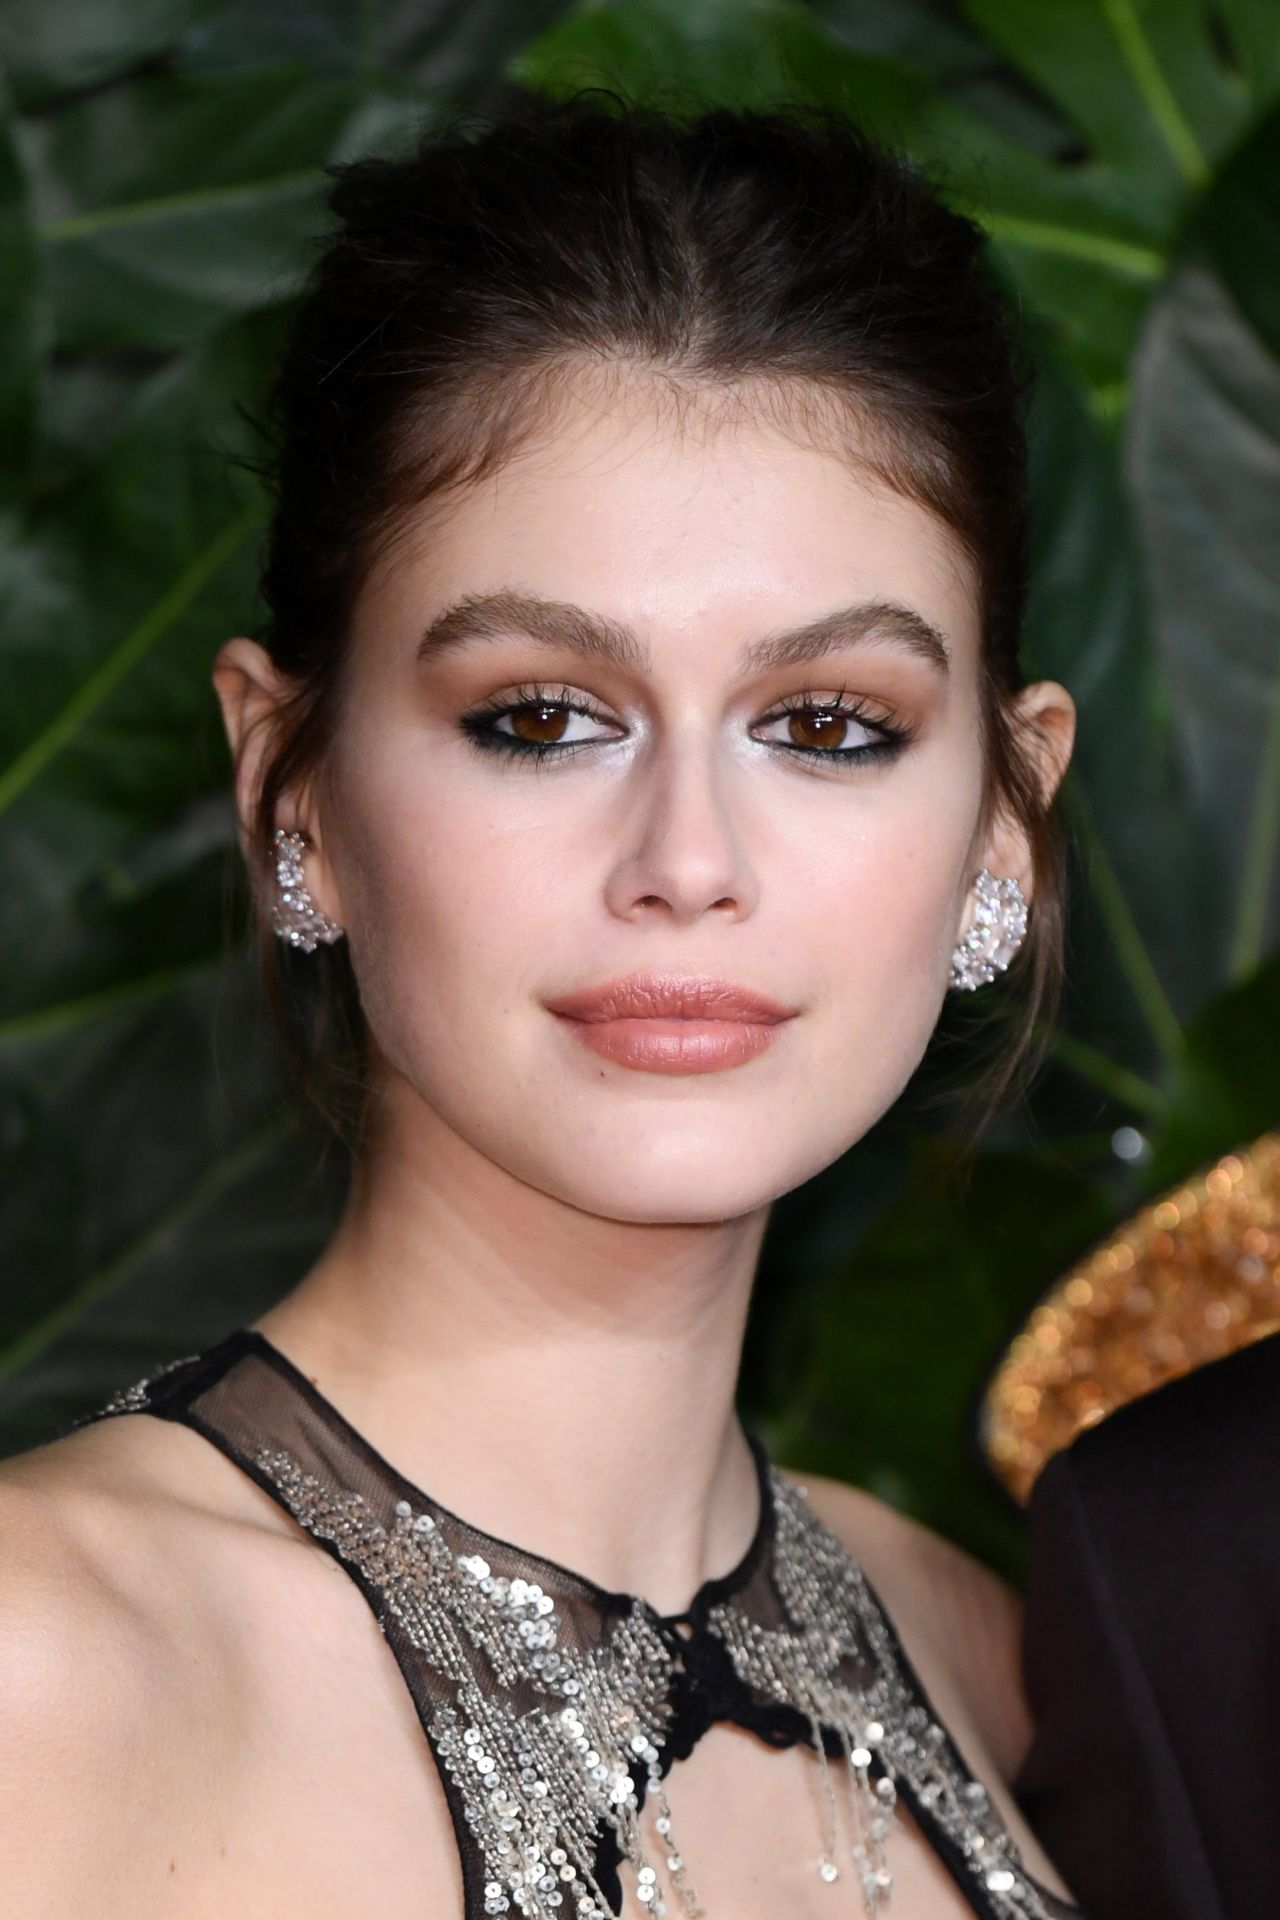 Kaia Gerber Is Still Happening At The British Fashion Awards: The Fashion Awards 2018 In London